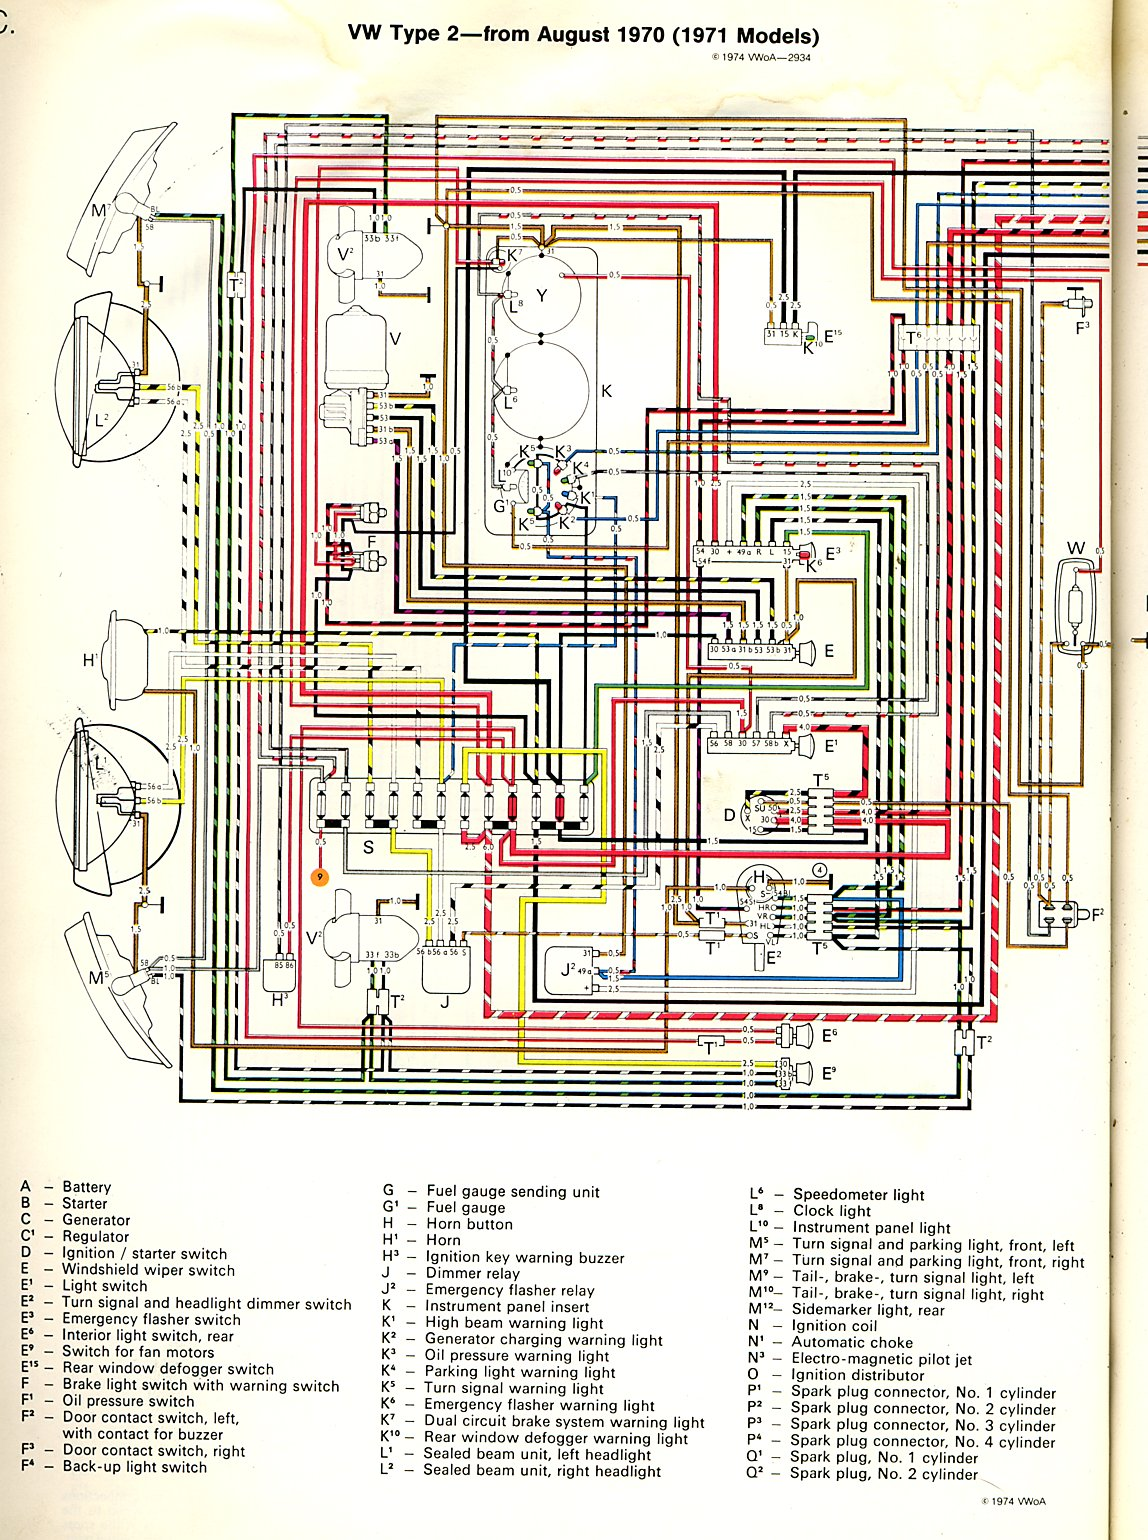 baybus_71a thesamba com type 2 wiring diagrams 1971 vw bus wiring diagram at bakdesigns.co